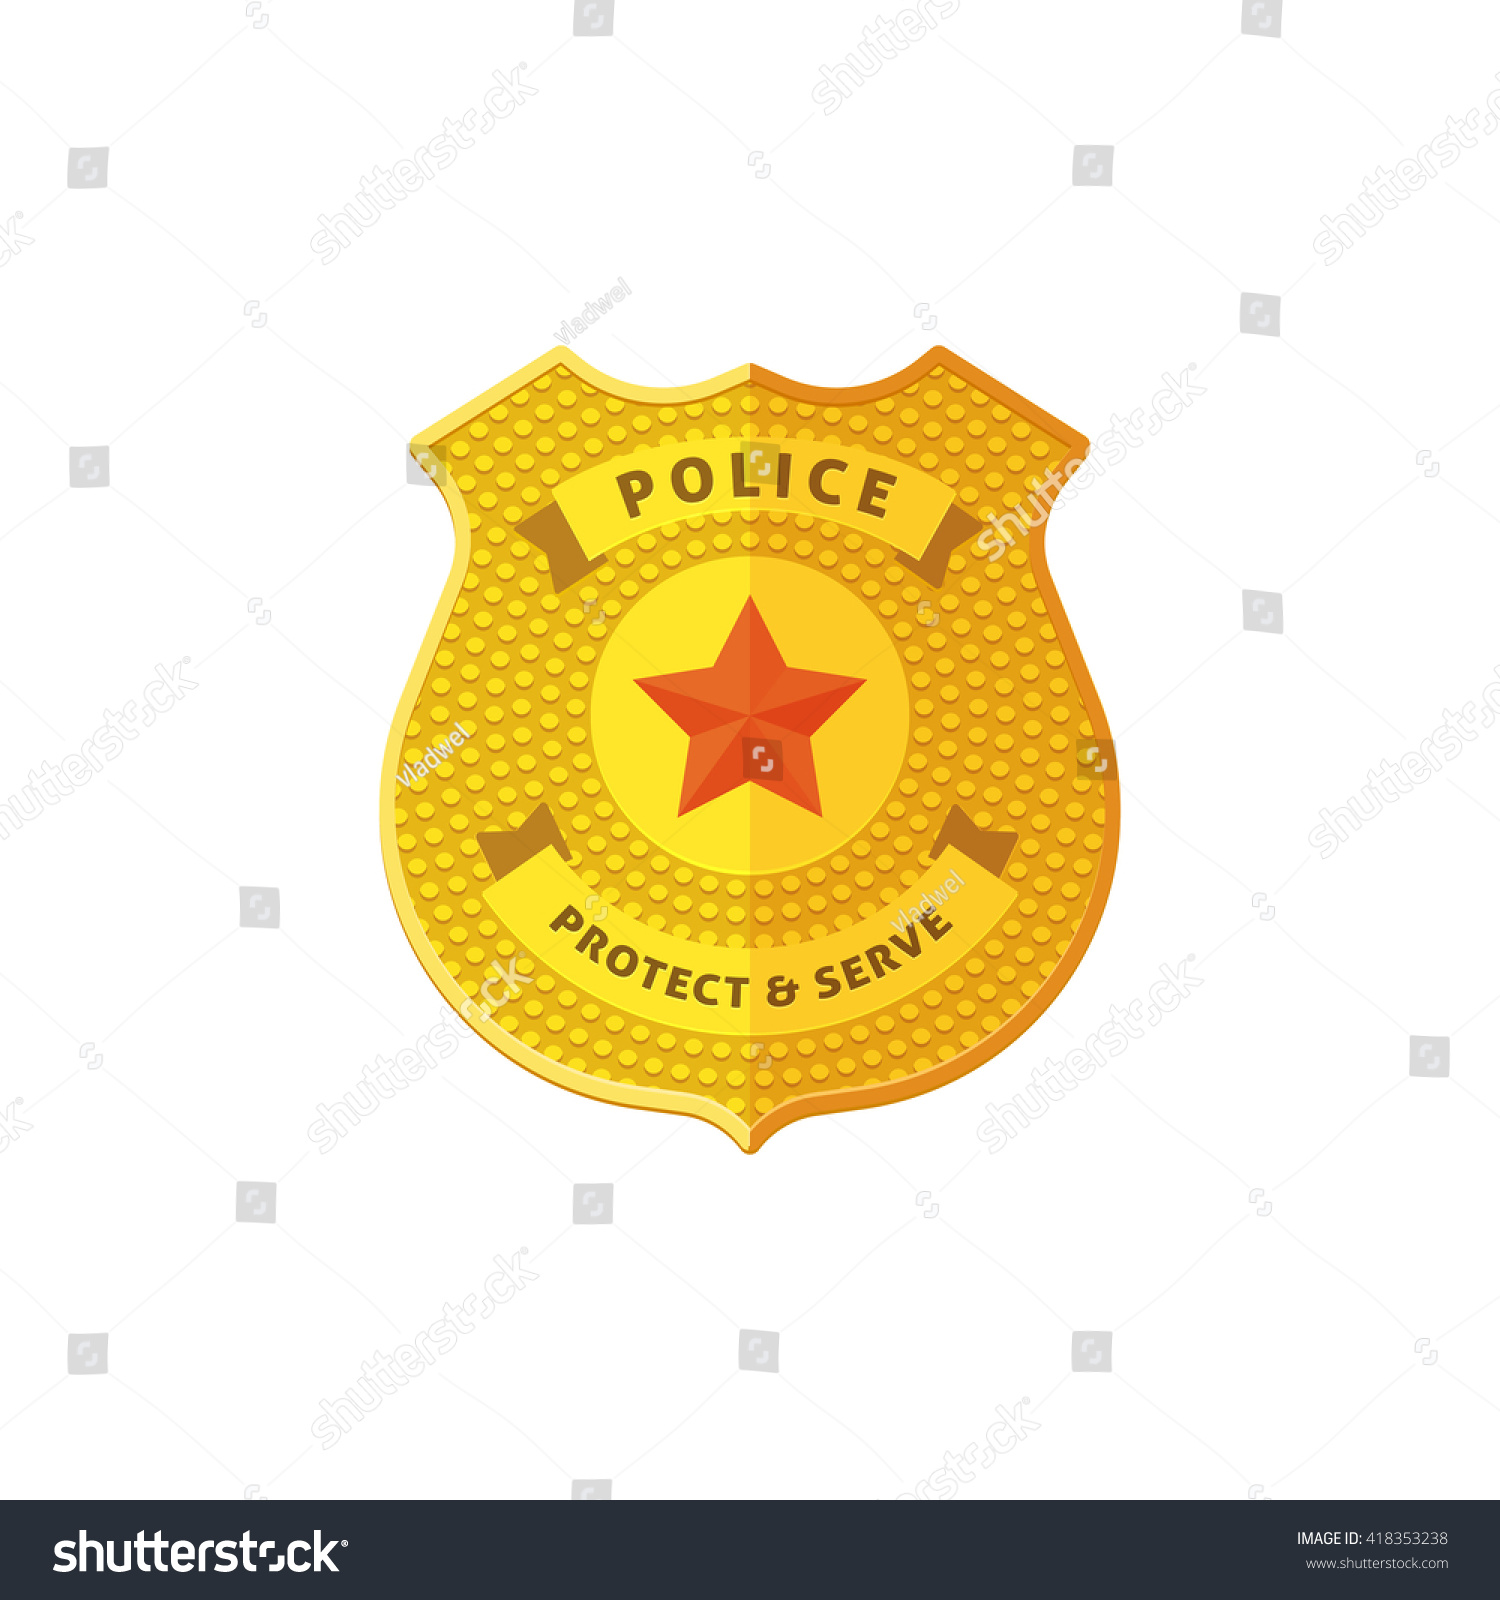 police badge vector illustration isolated on stock vector